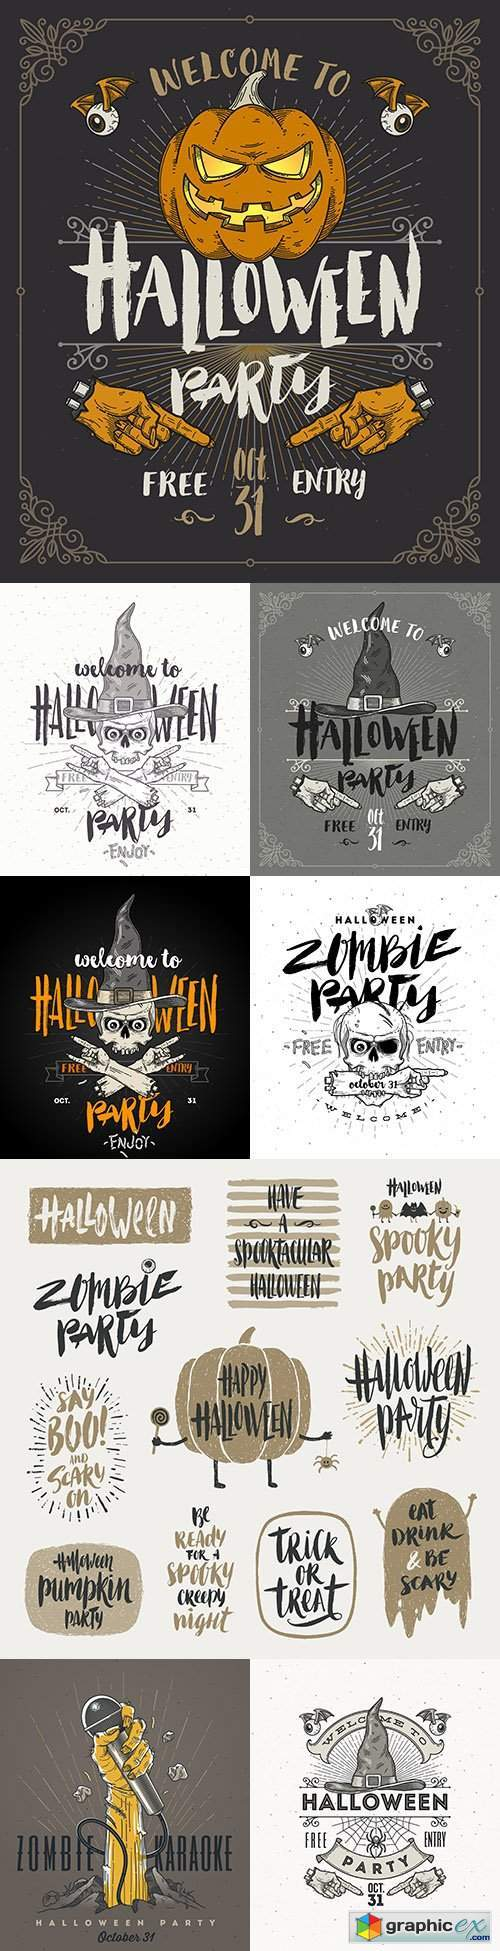 Halloween poster or invitation vintage design illustration